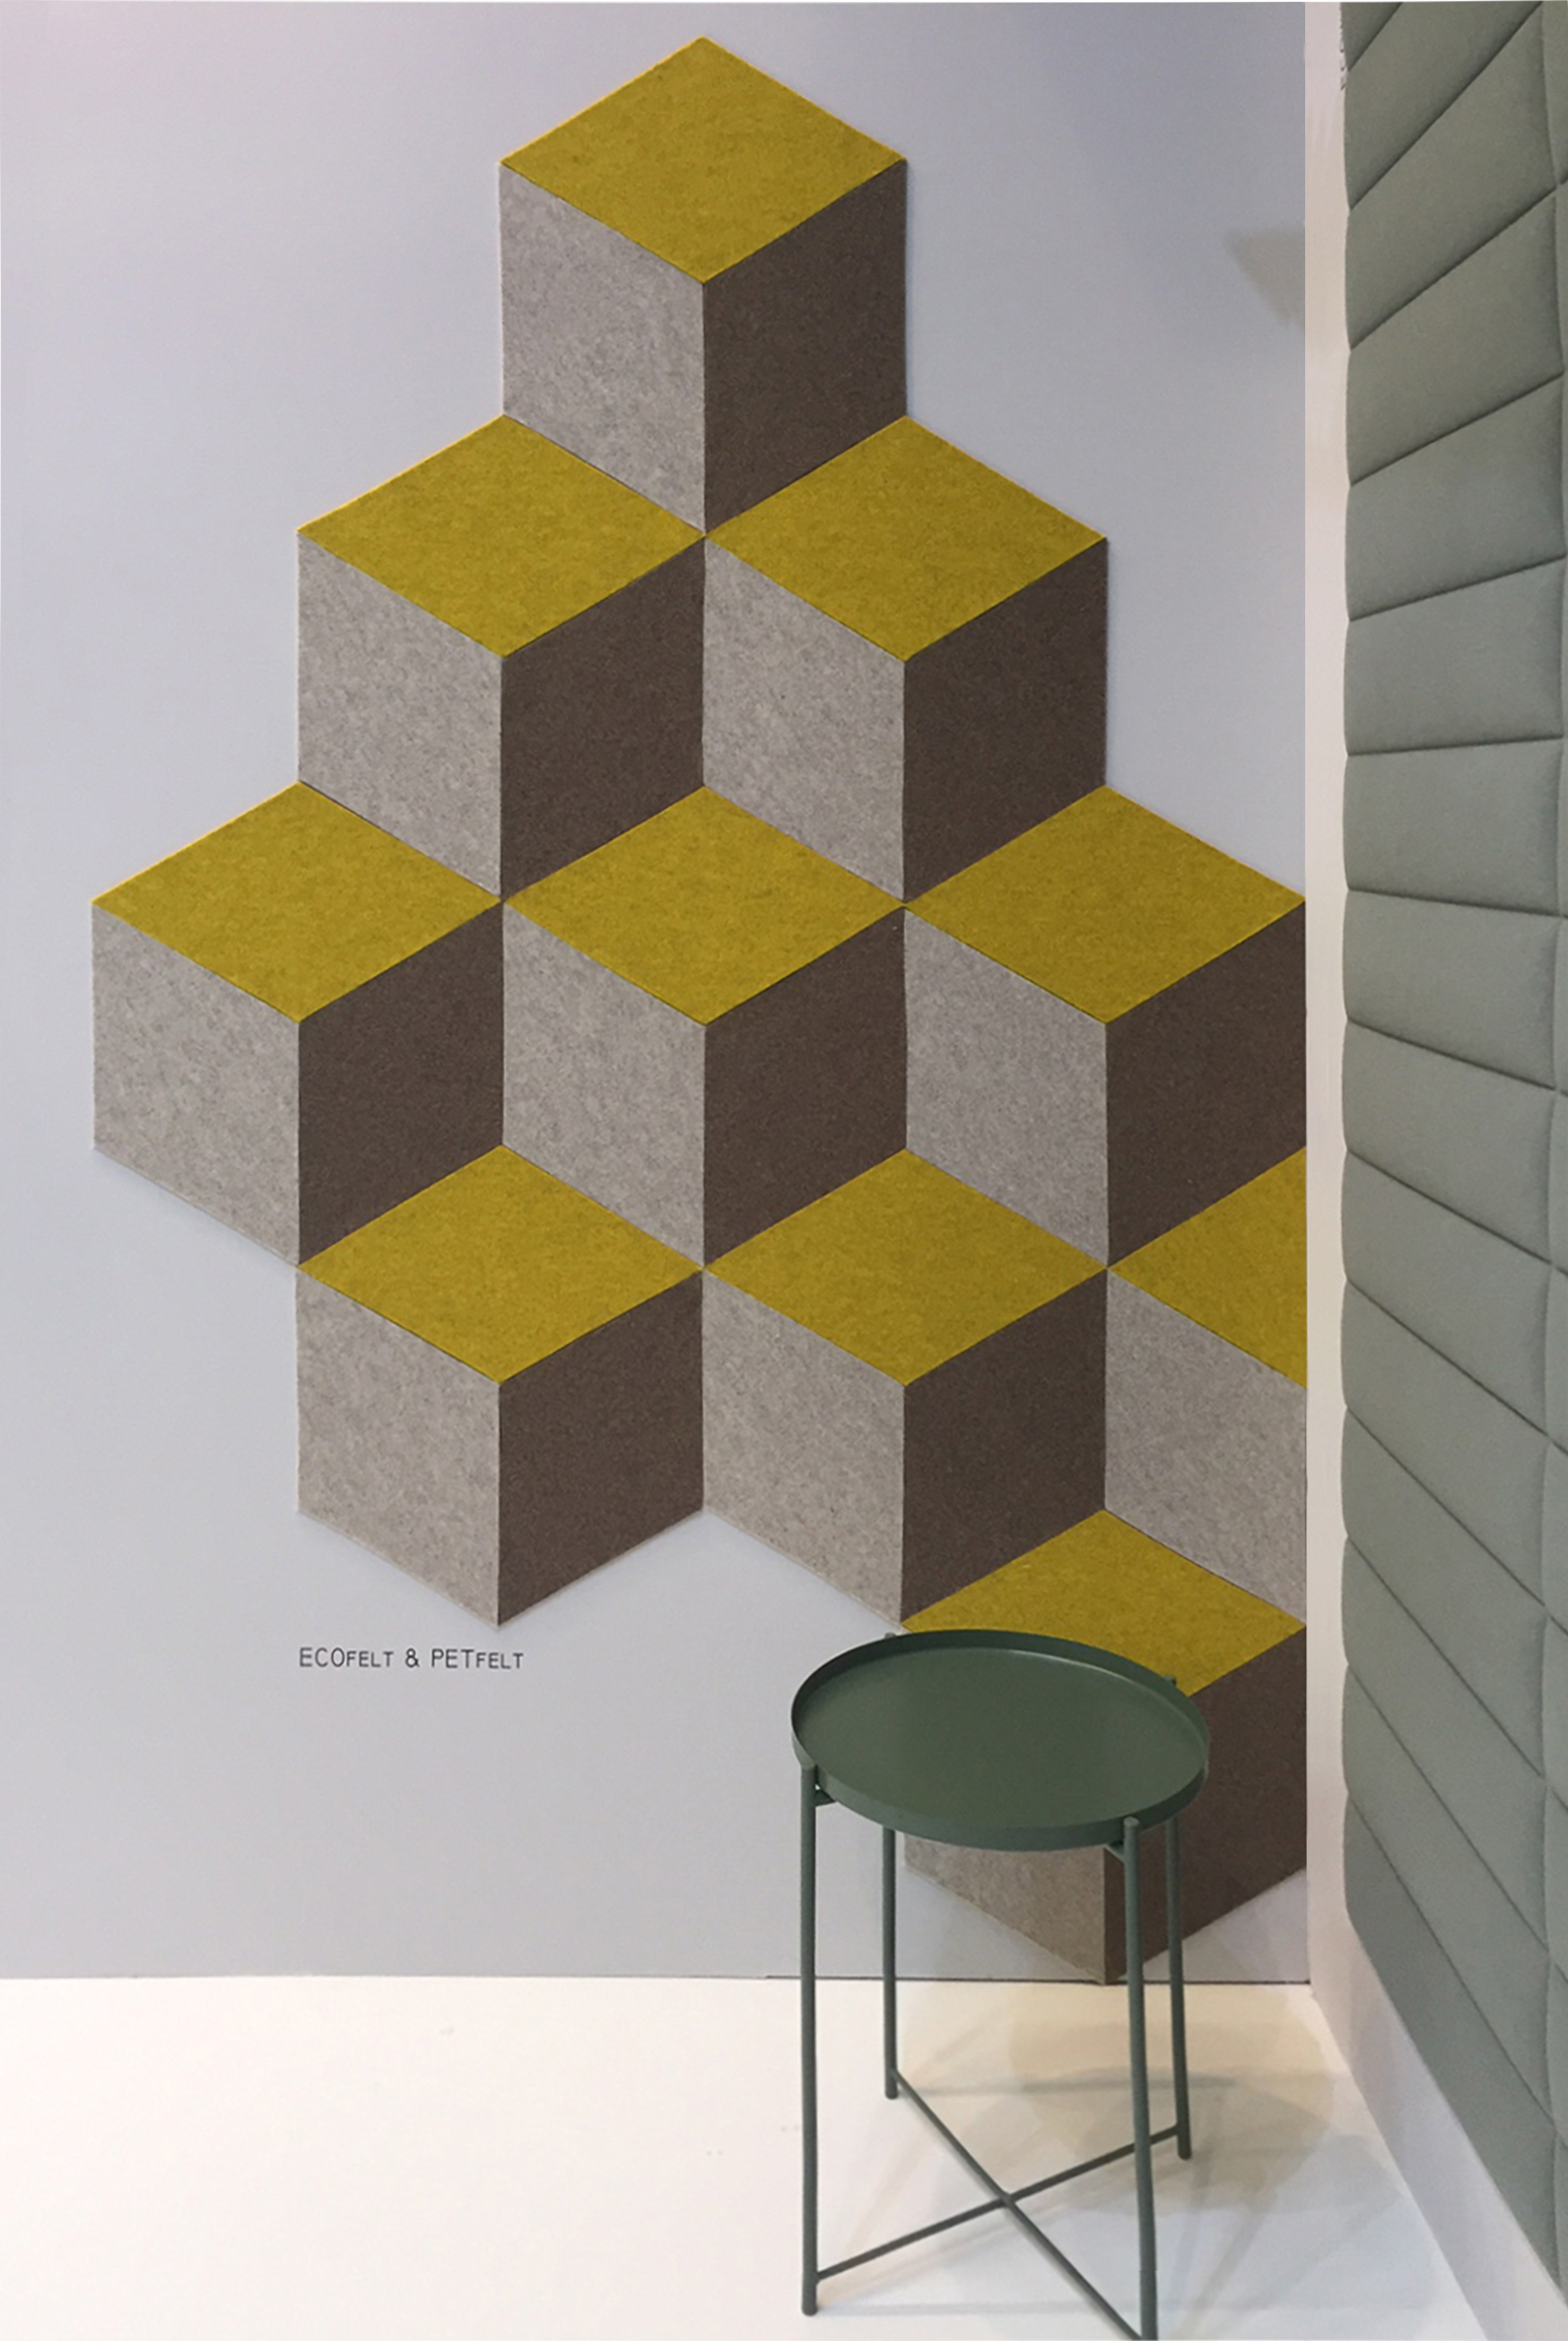 ECO&PETfelt - shapes (12).jpg